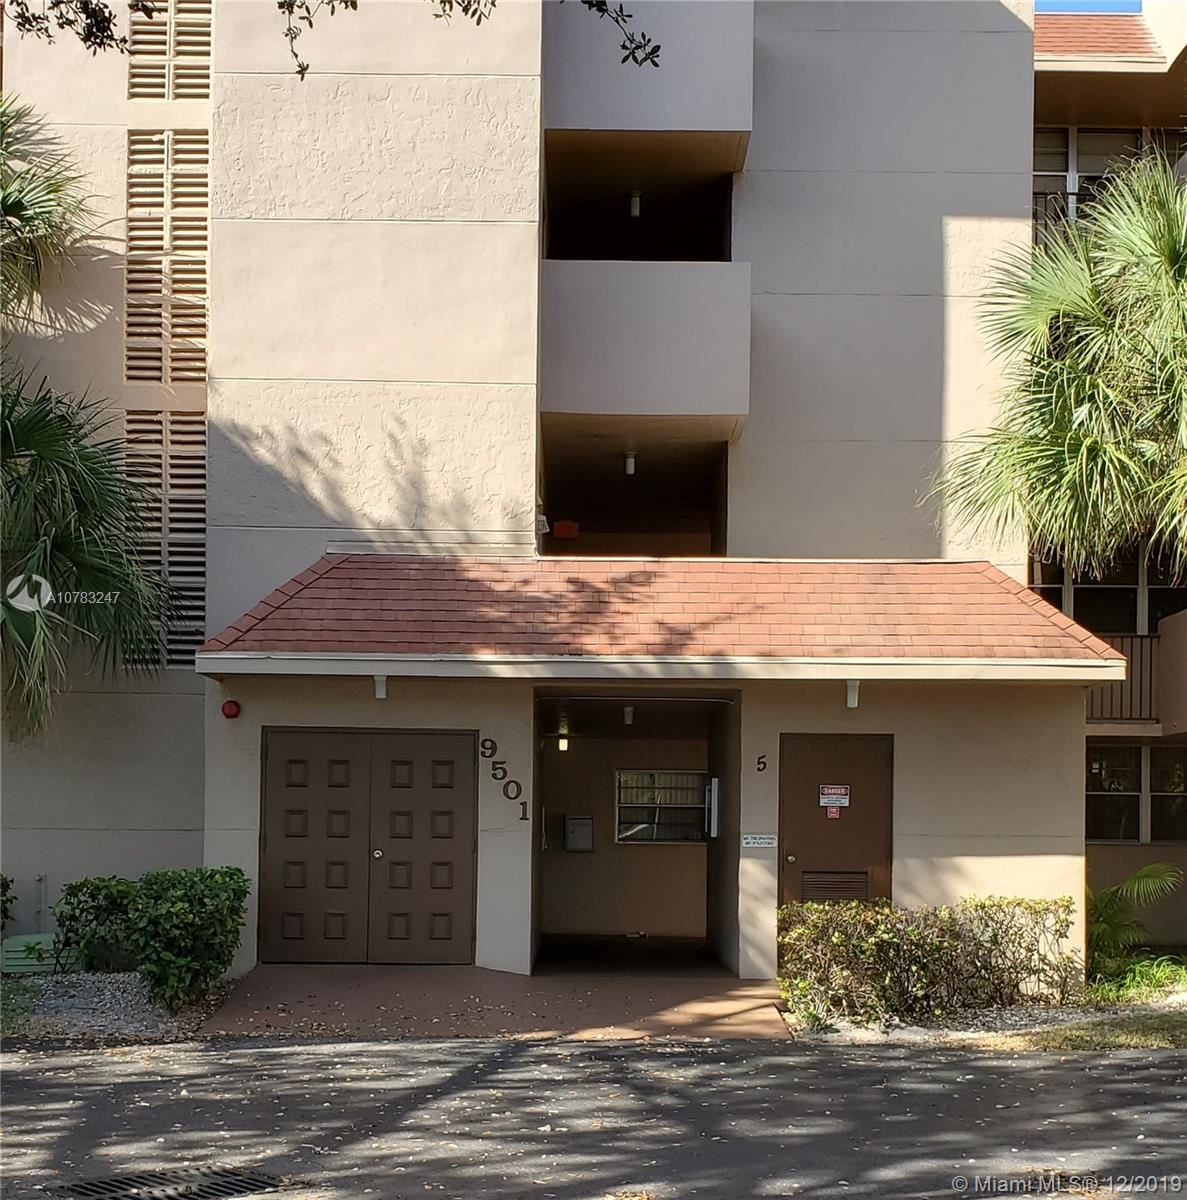 Photo of 9501 Seagrape Dr #201, Davie, FL 33324 (MLS # A10783247)